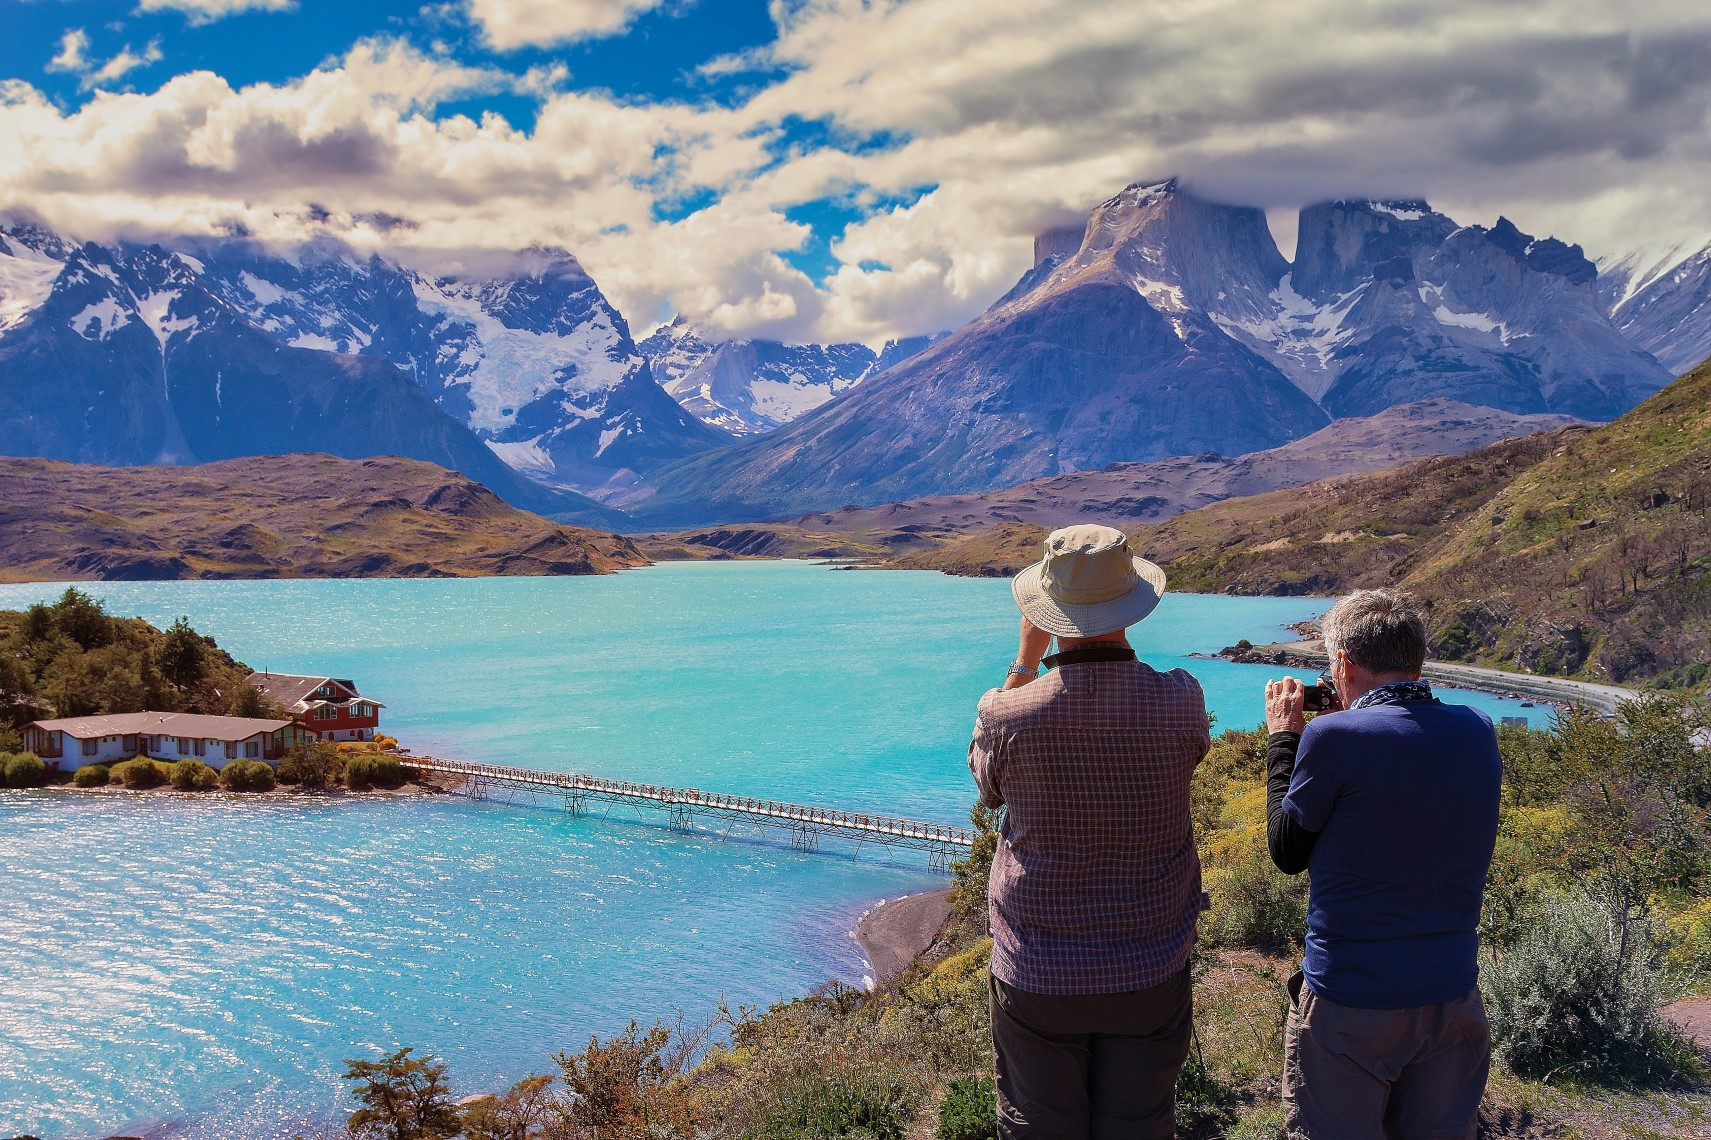 Hotel Las Torres Patagonia Torres del Paine National Park Chile South America South American Travel Specialists